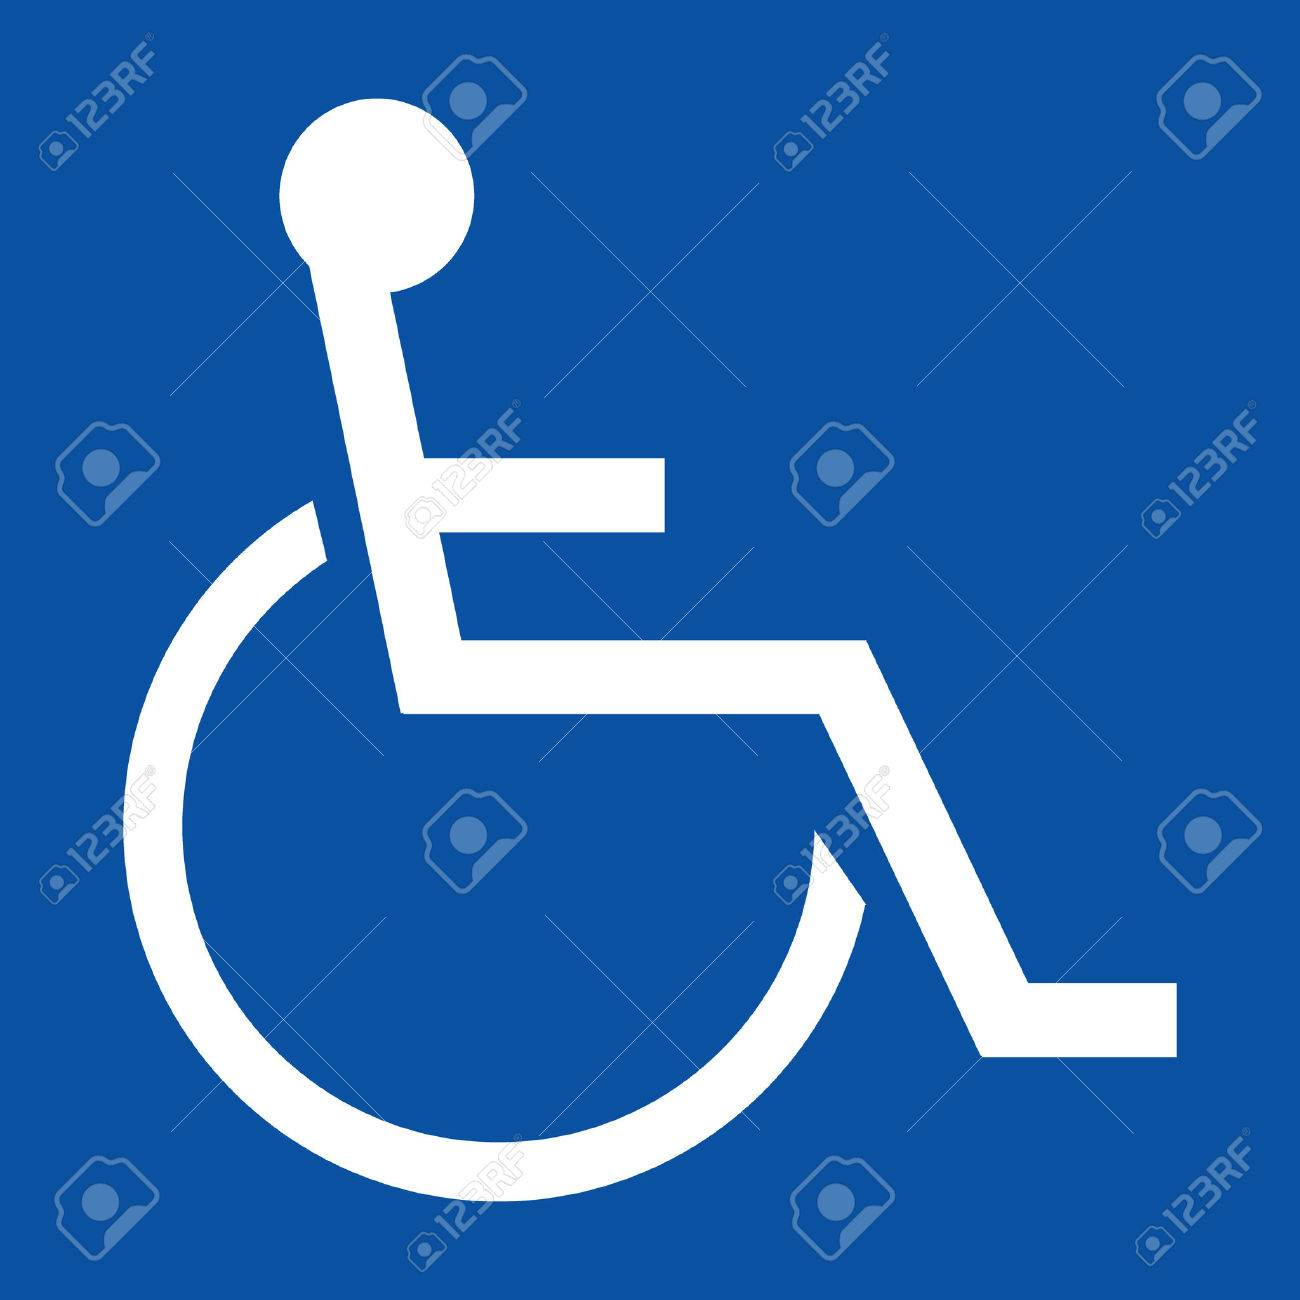 Sign indicating a handicapped person in white on a blue background Stock Vector - 4495707